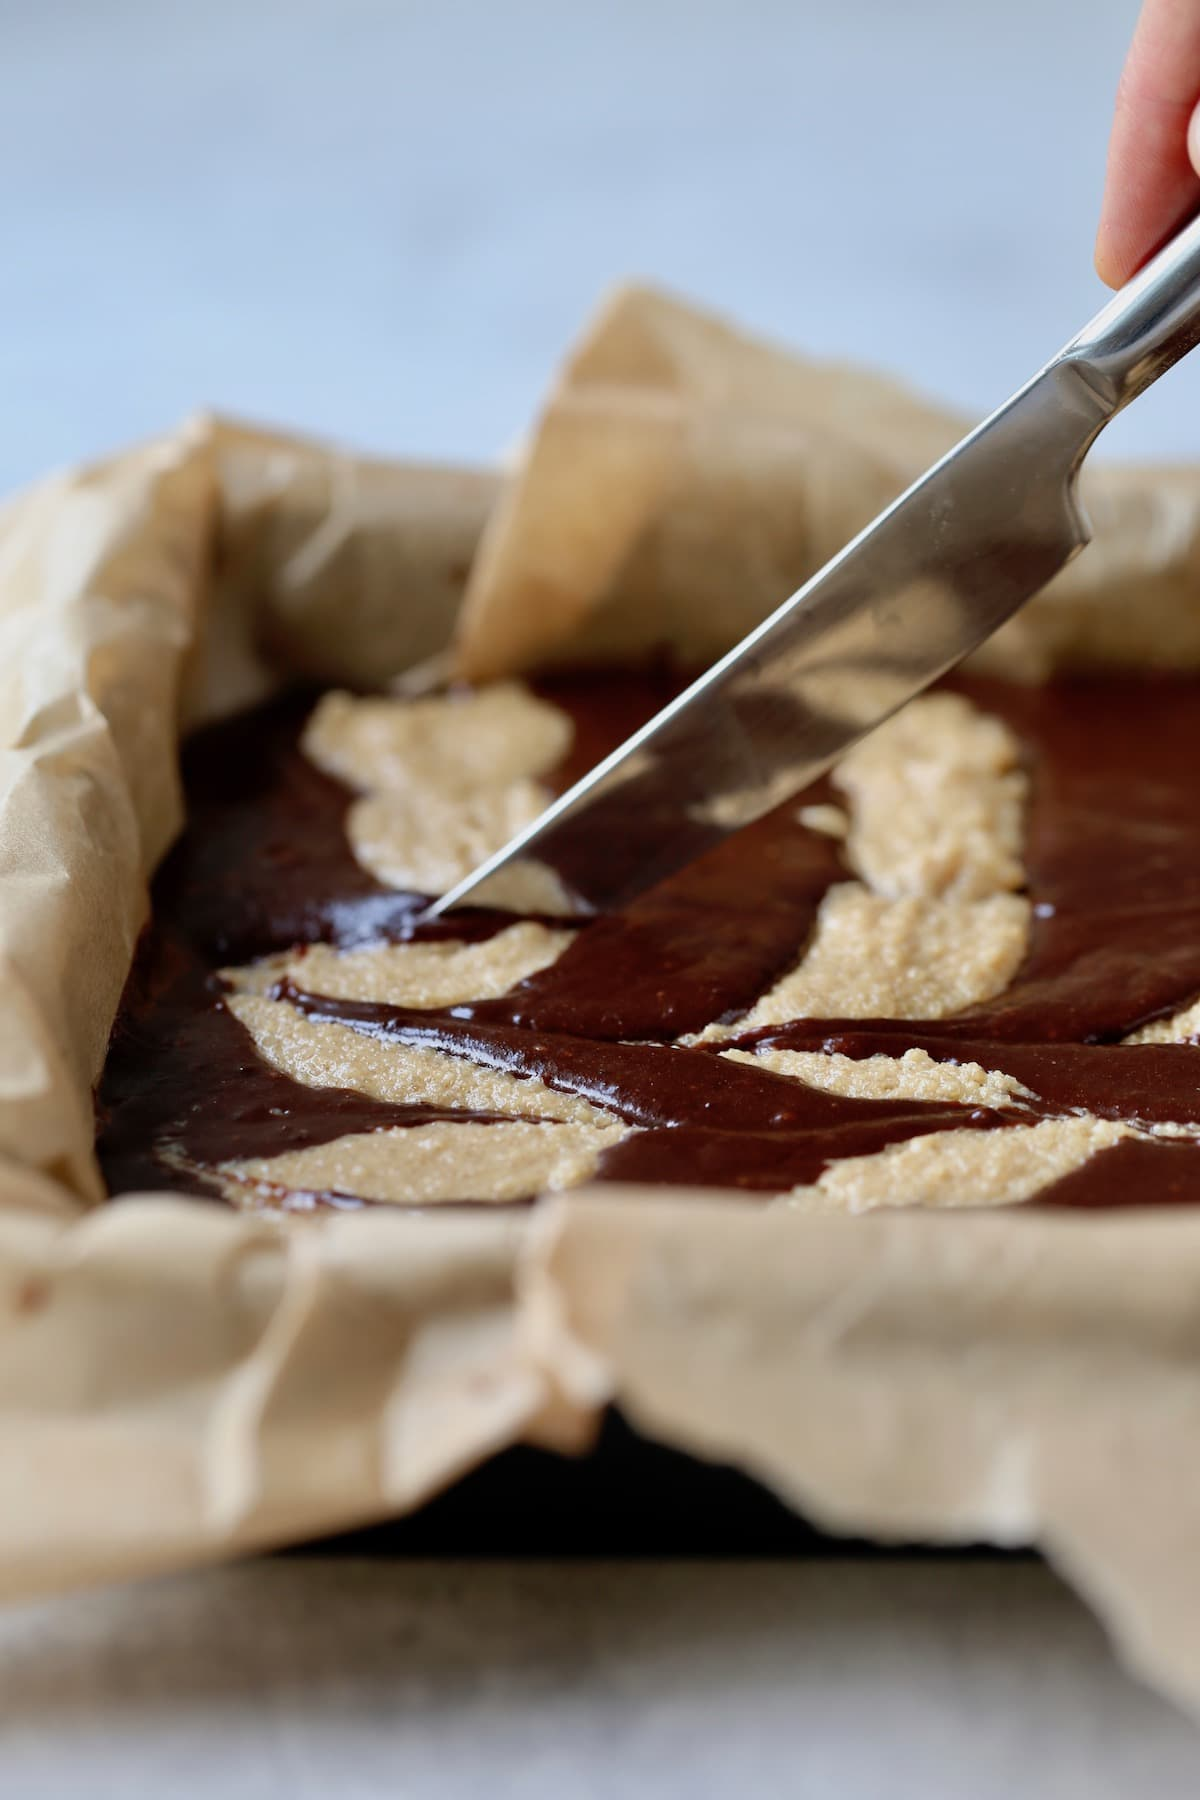 dragging a knife through peanut butter brownie batter to create a swirl